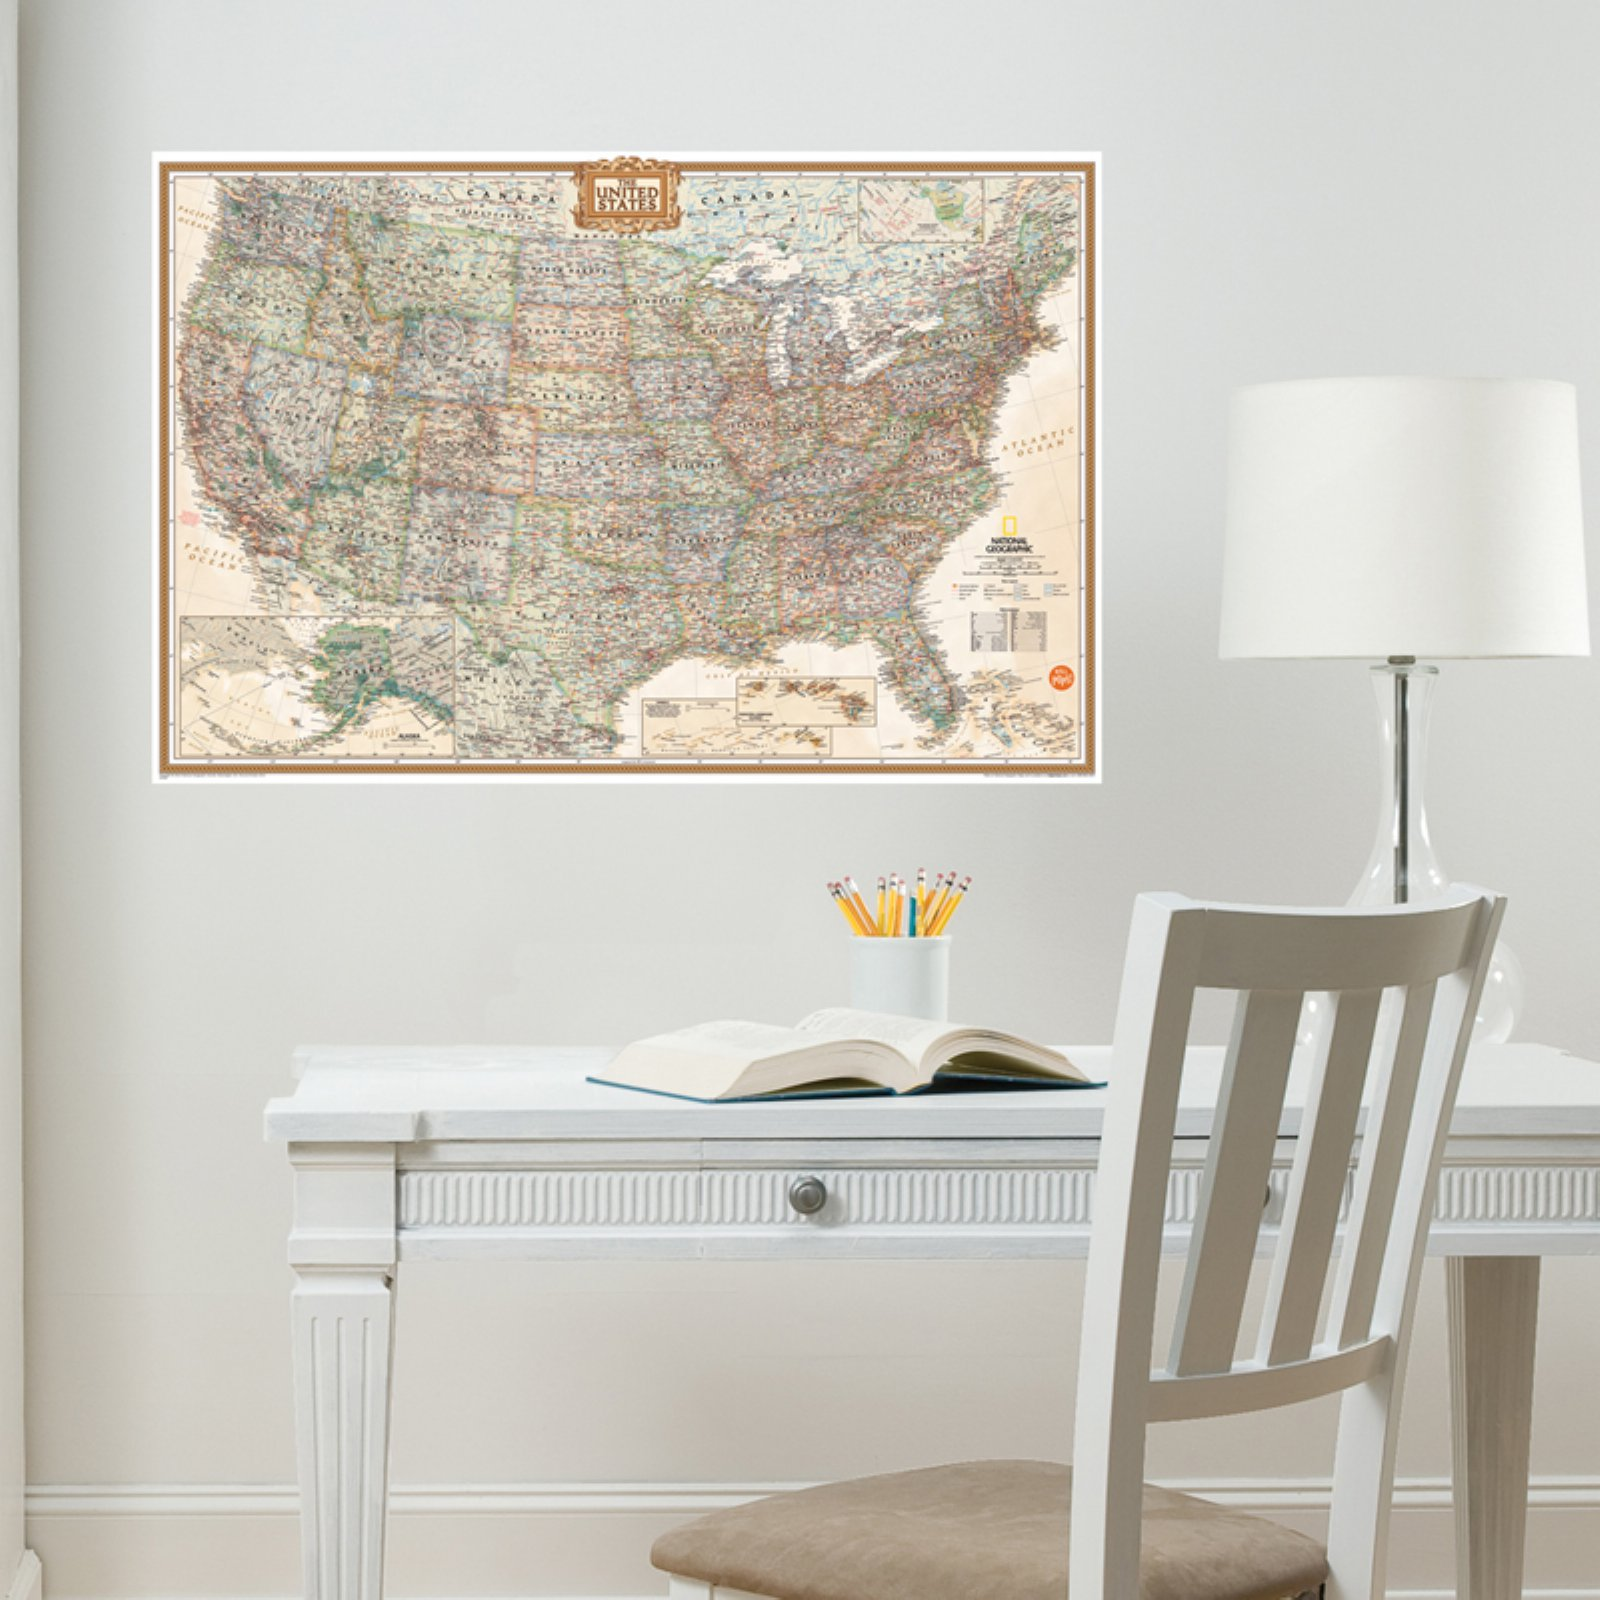 Wall Pops National Geographic USA Executive Dry-Erase Map Decal